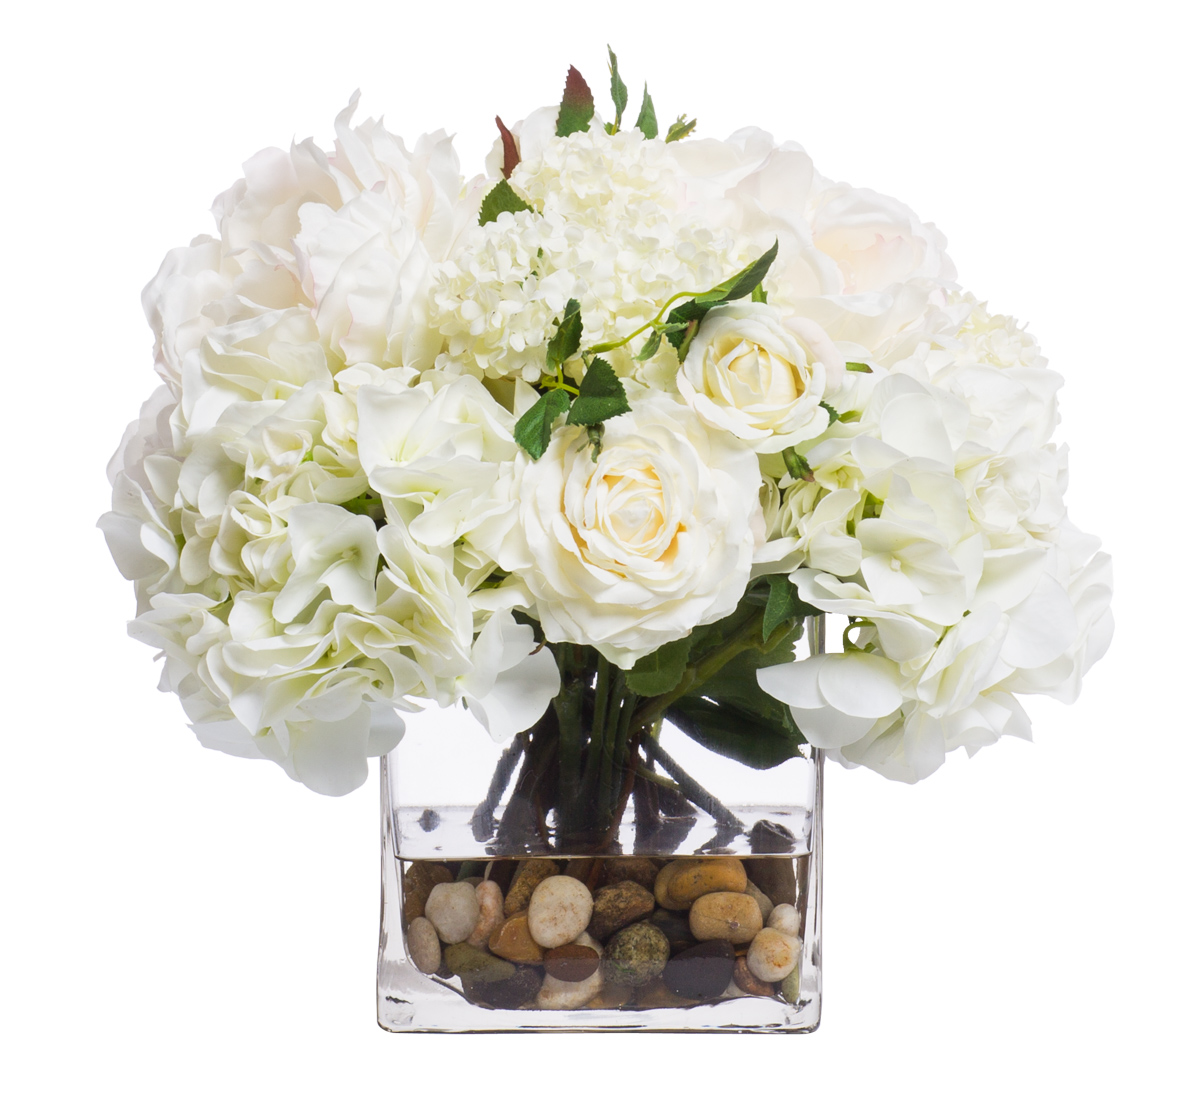 White / Cream Hydrangea in 6